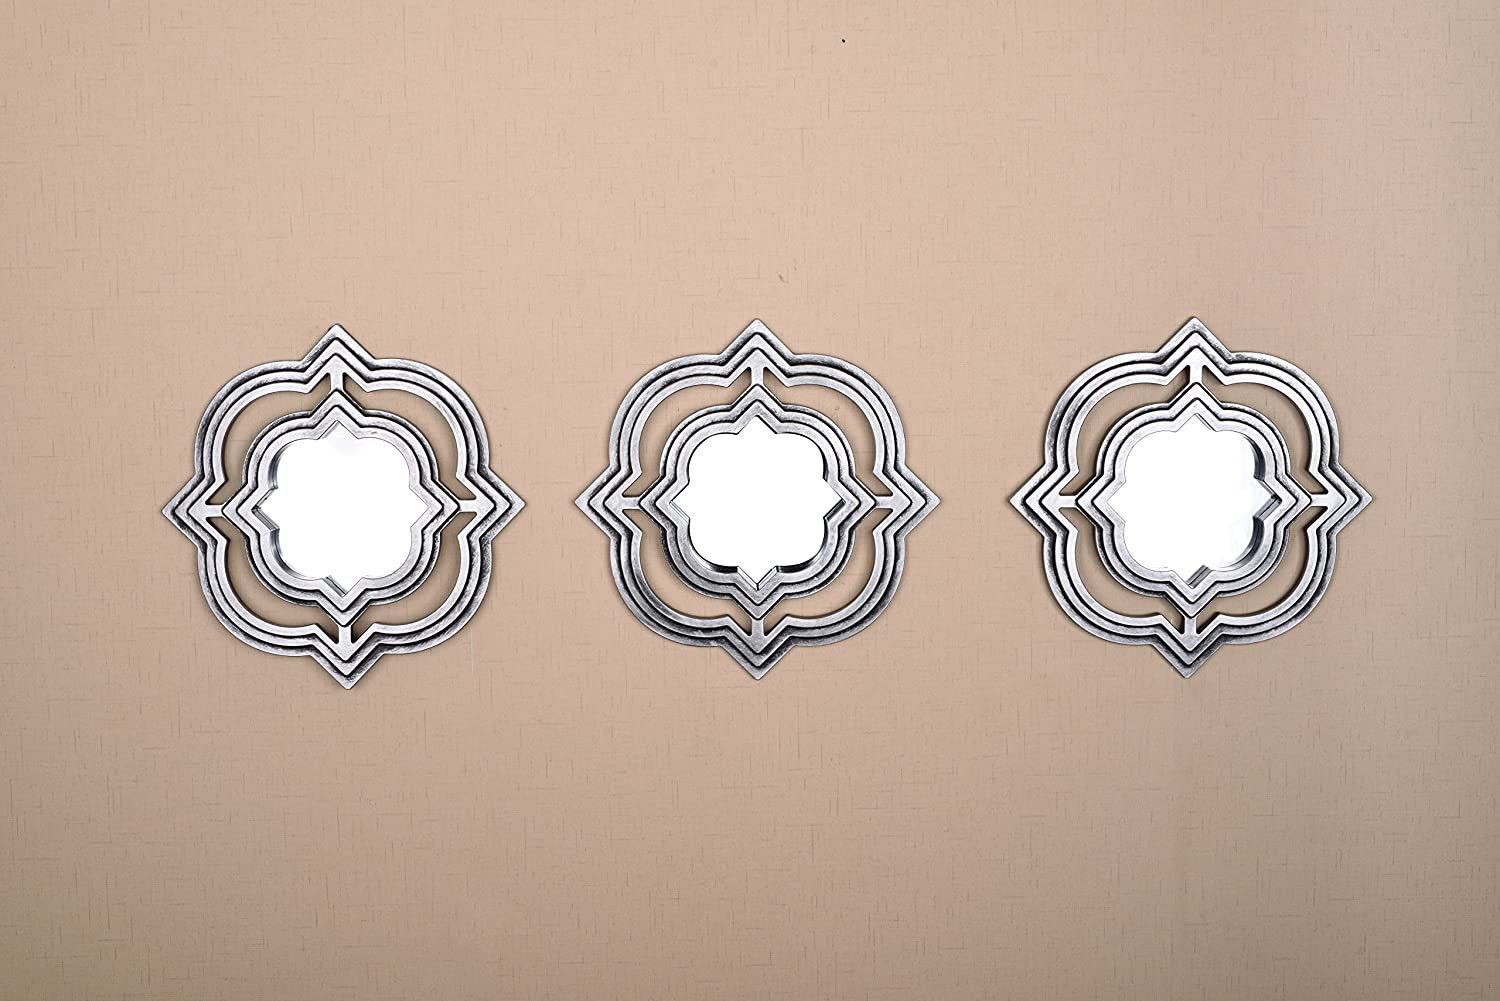 All American Collection New 3 Piece Decorative Mirror Set, Wall Accent Display (Silver Moroccan)